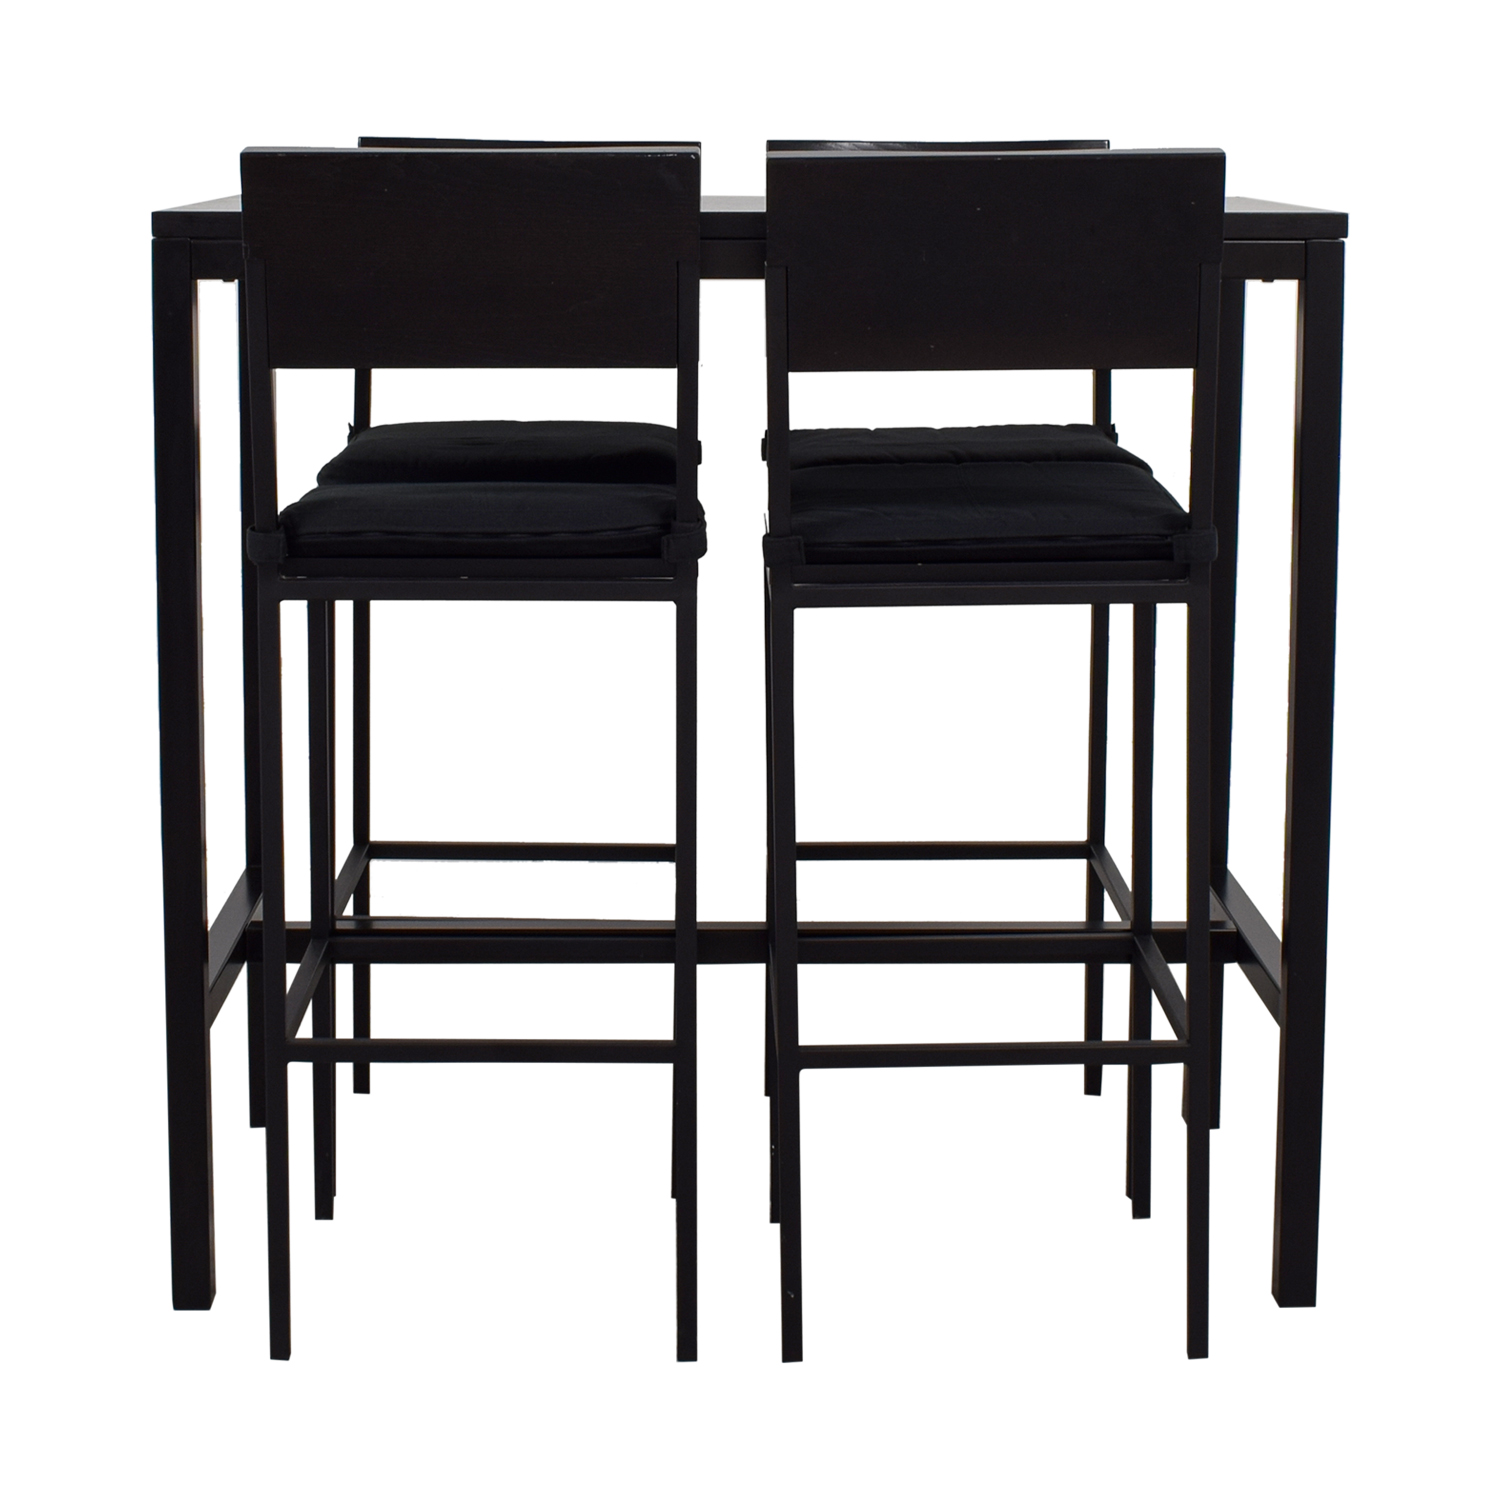 Crate & Barrel Crate & Barrel Black Tall Kitchen Dining Set Dining Sets